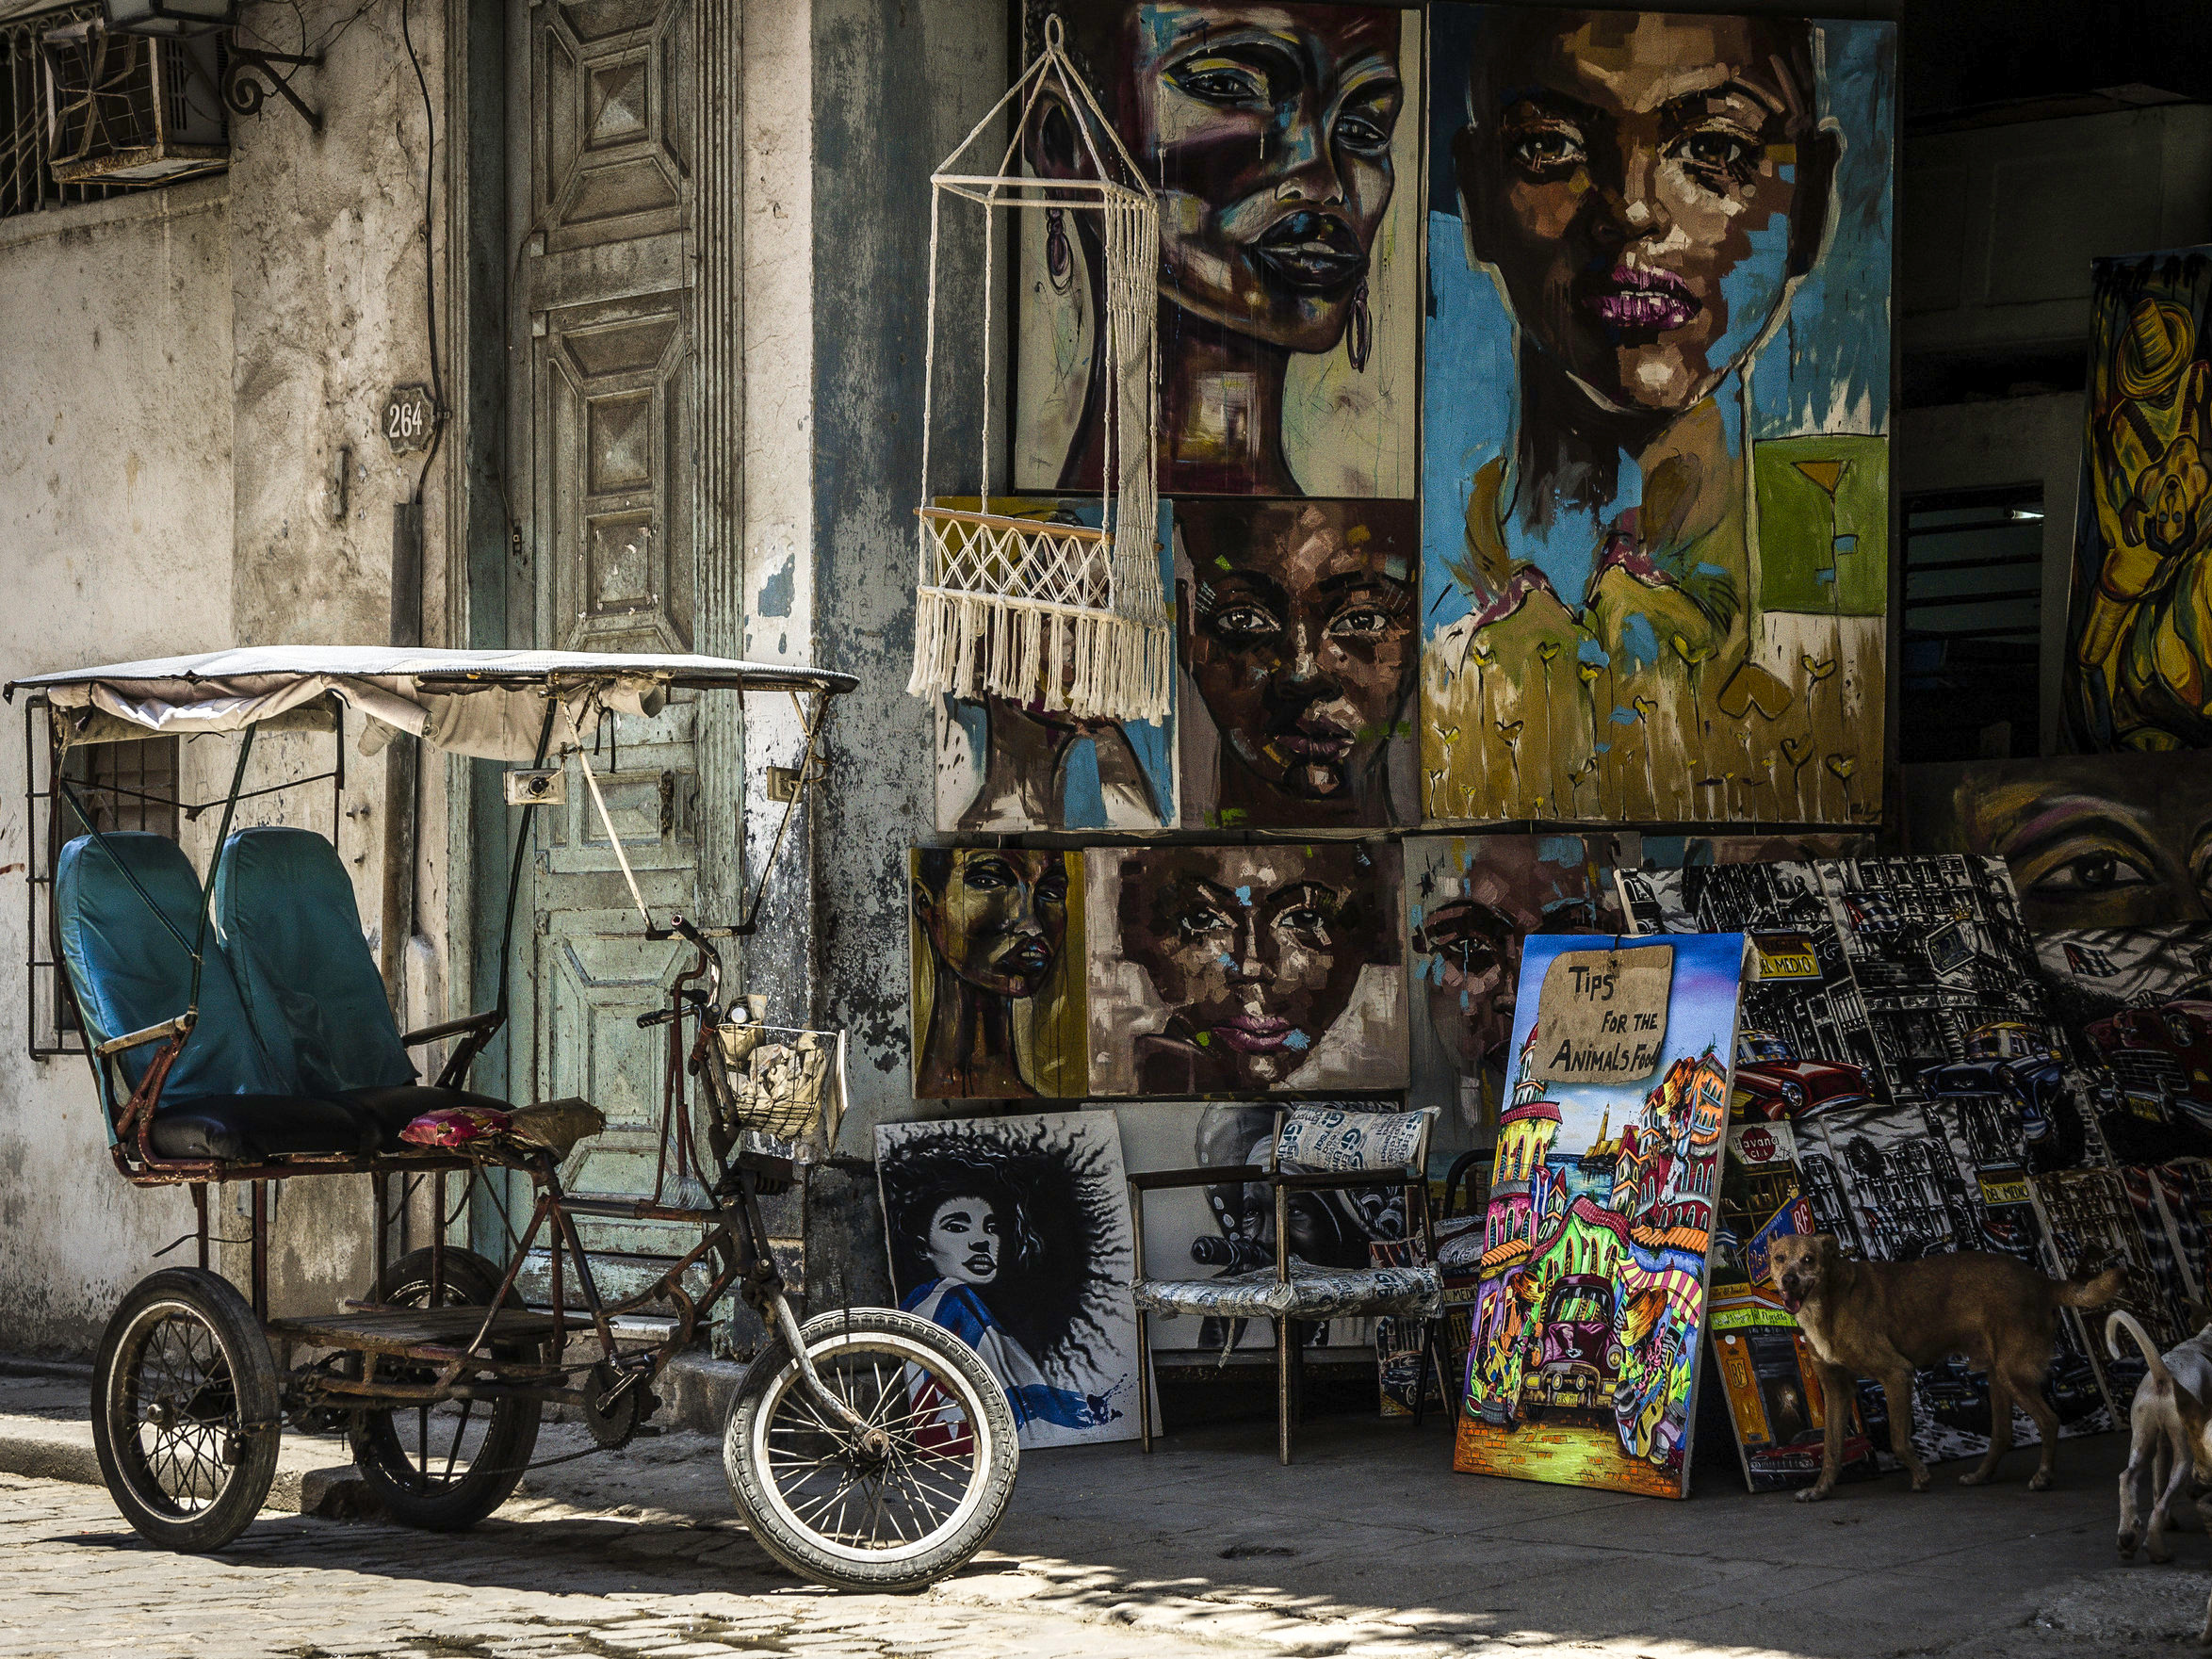 Bicitaxis, or bike taxis, are common across Cuba